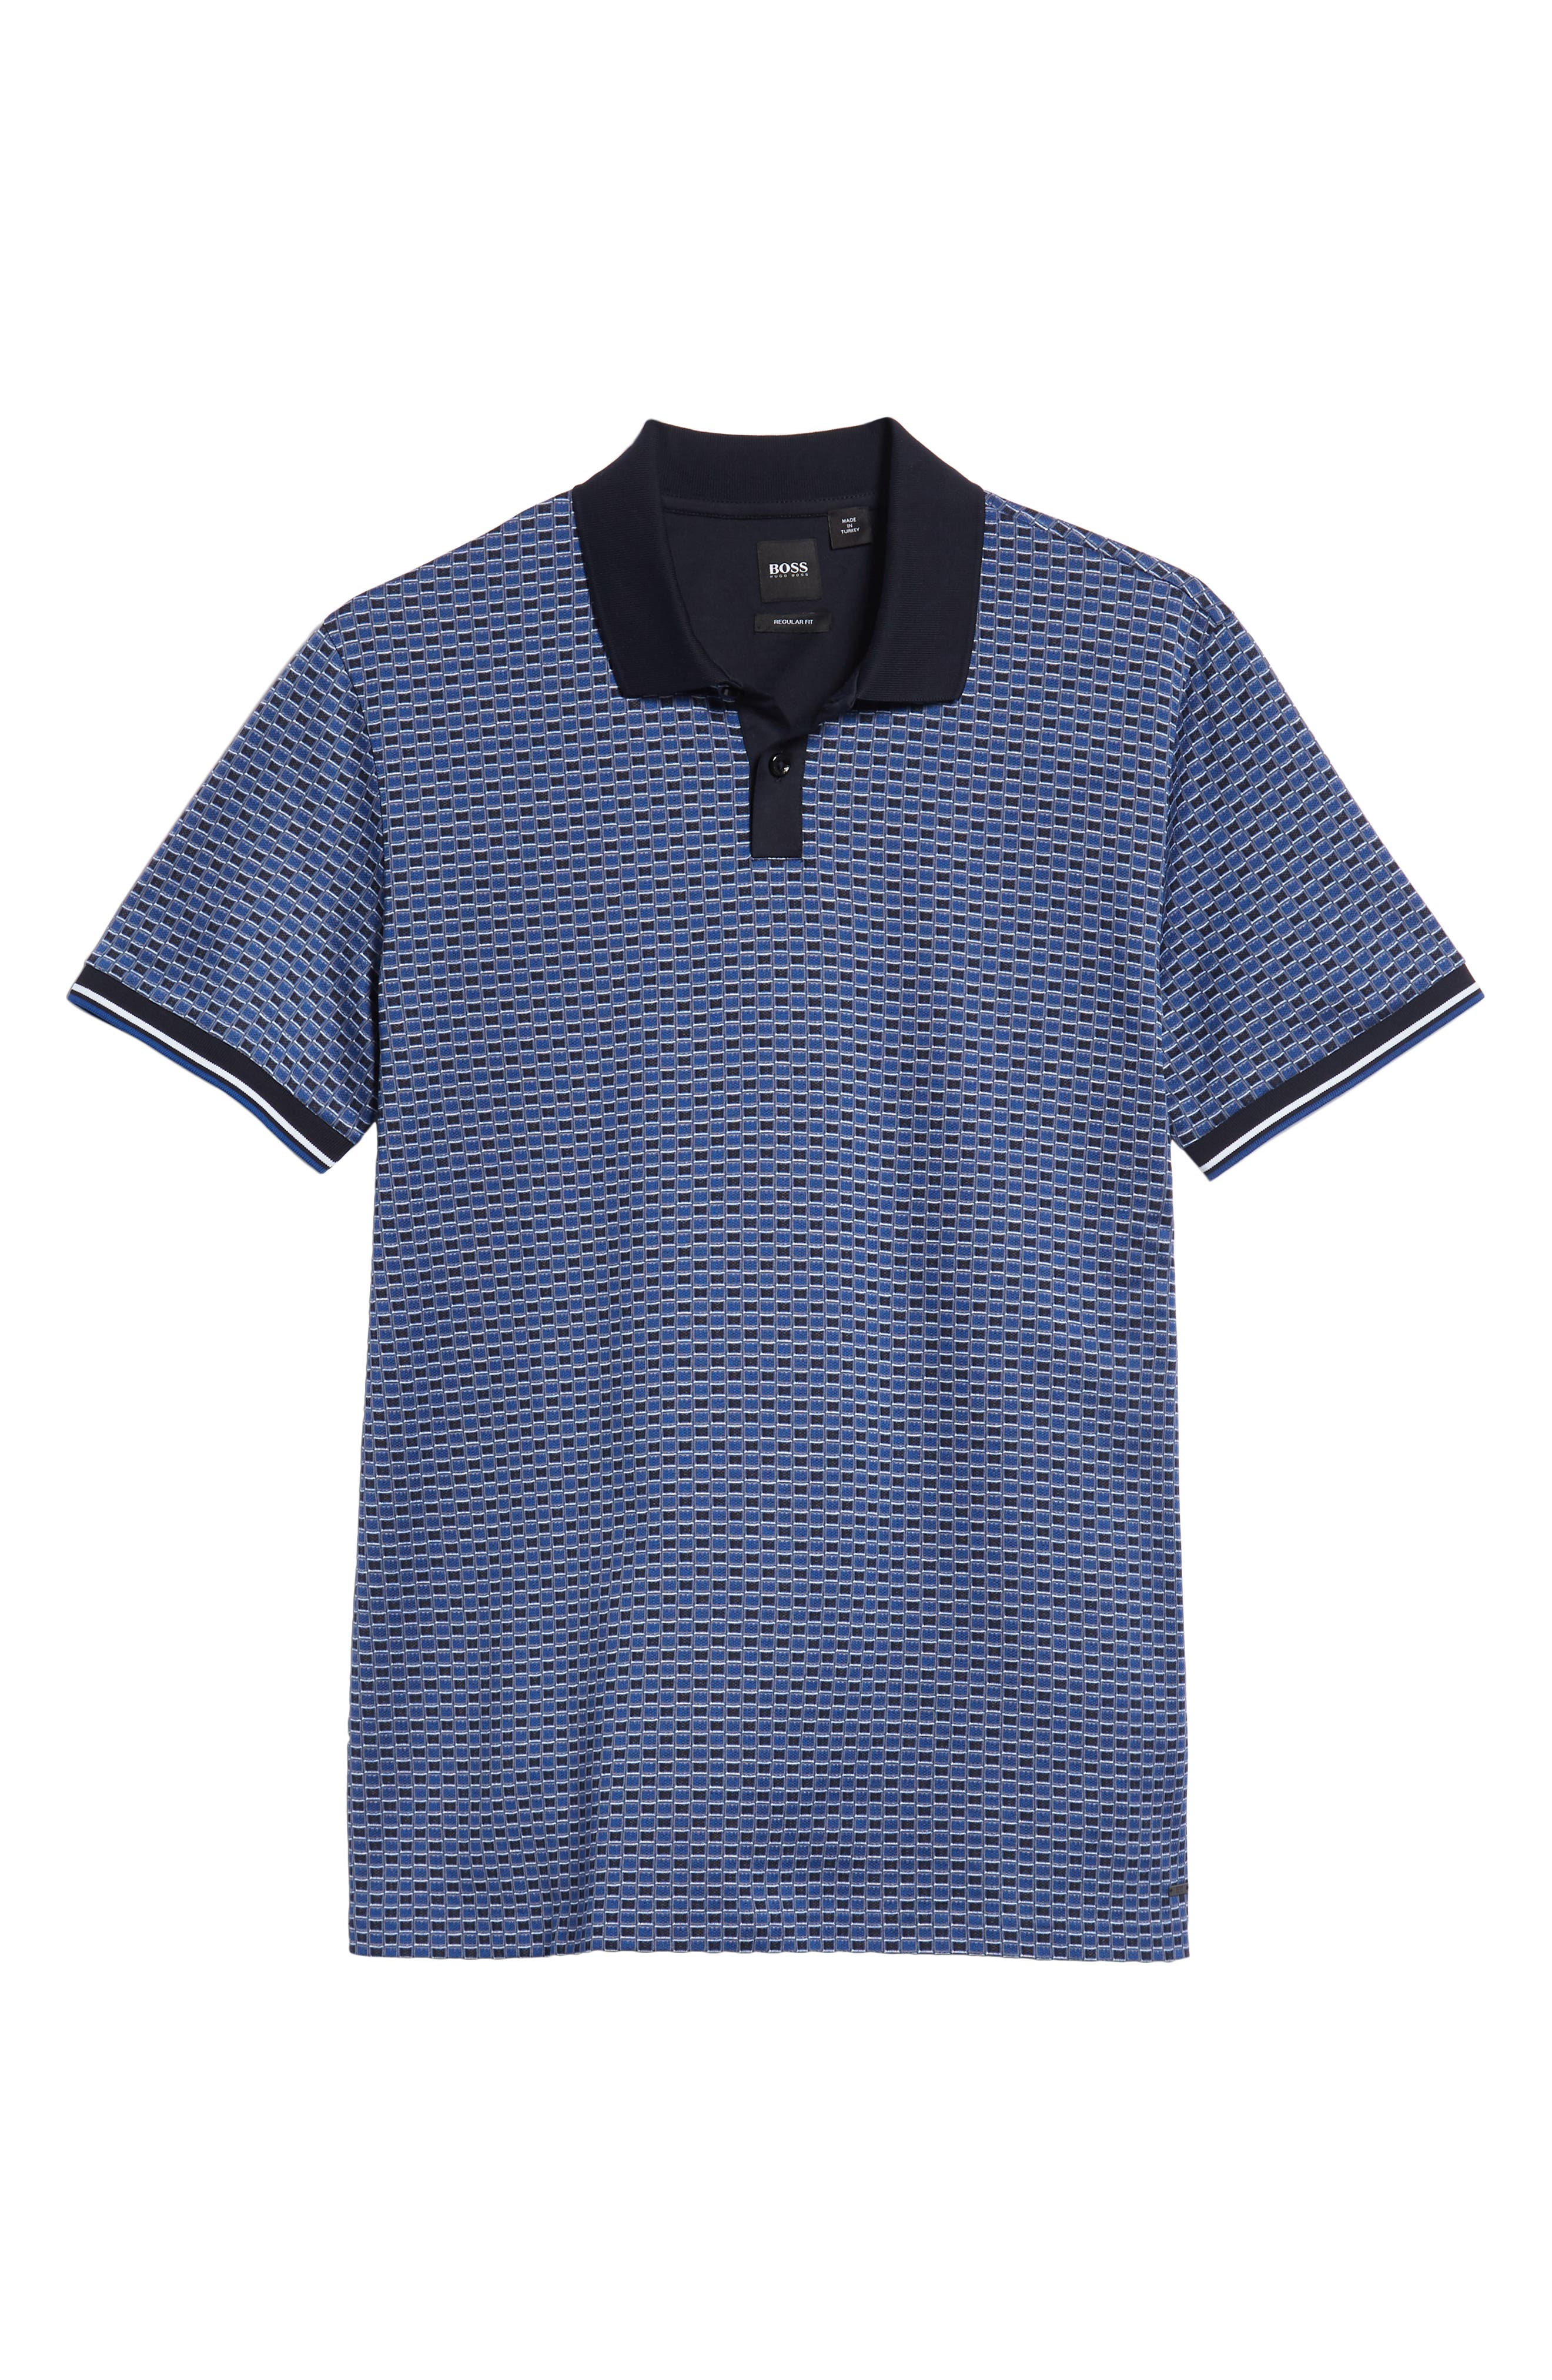 Parlay Regular Fit Polo,                             Alternate thumbnail 6, color,                             BLUE